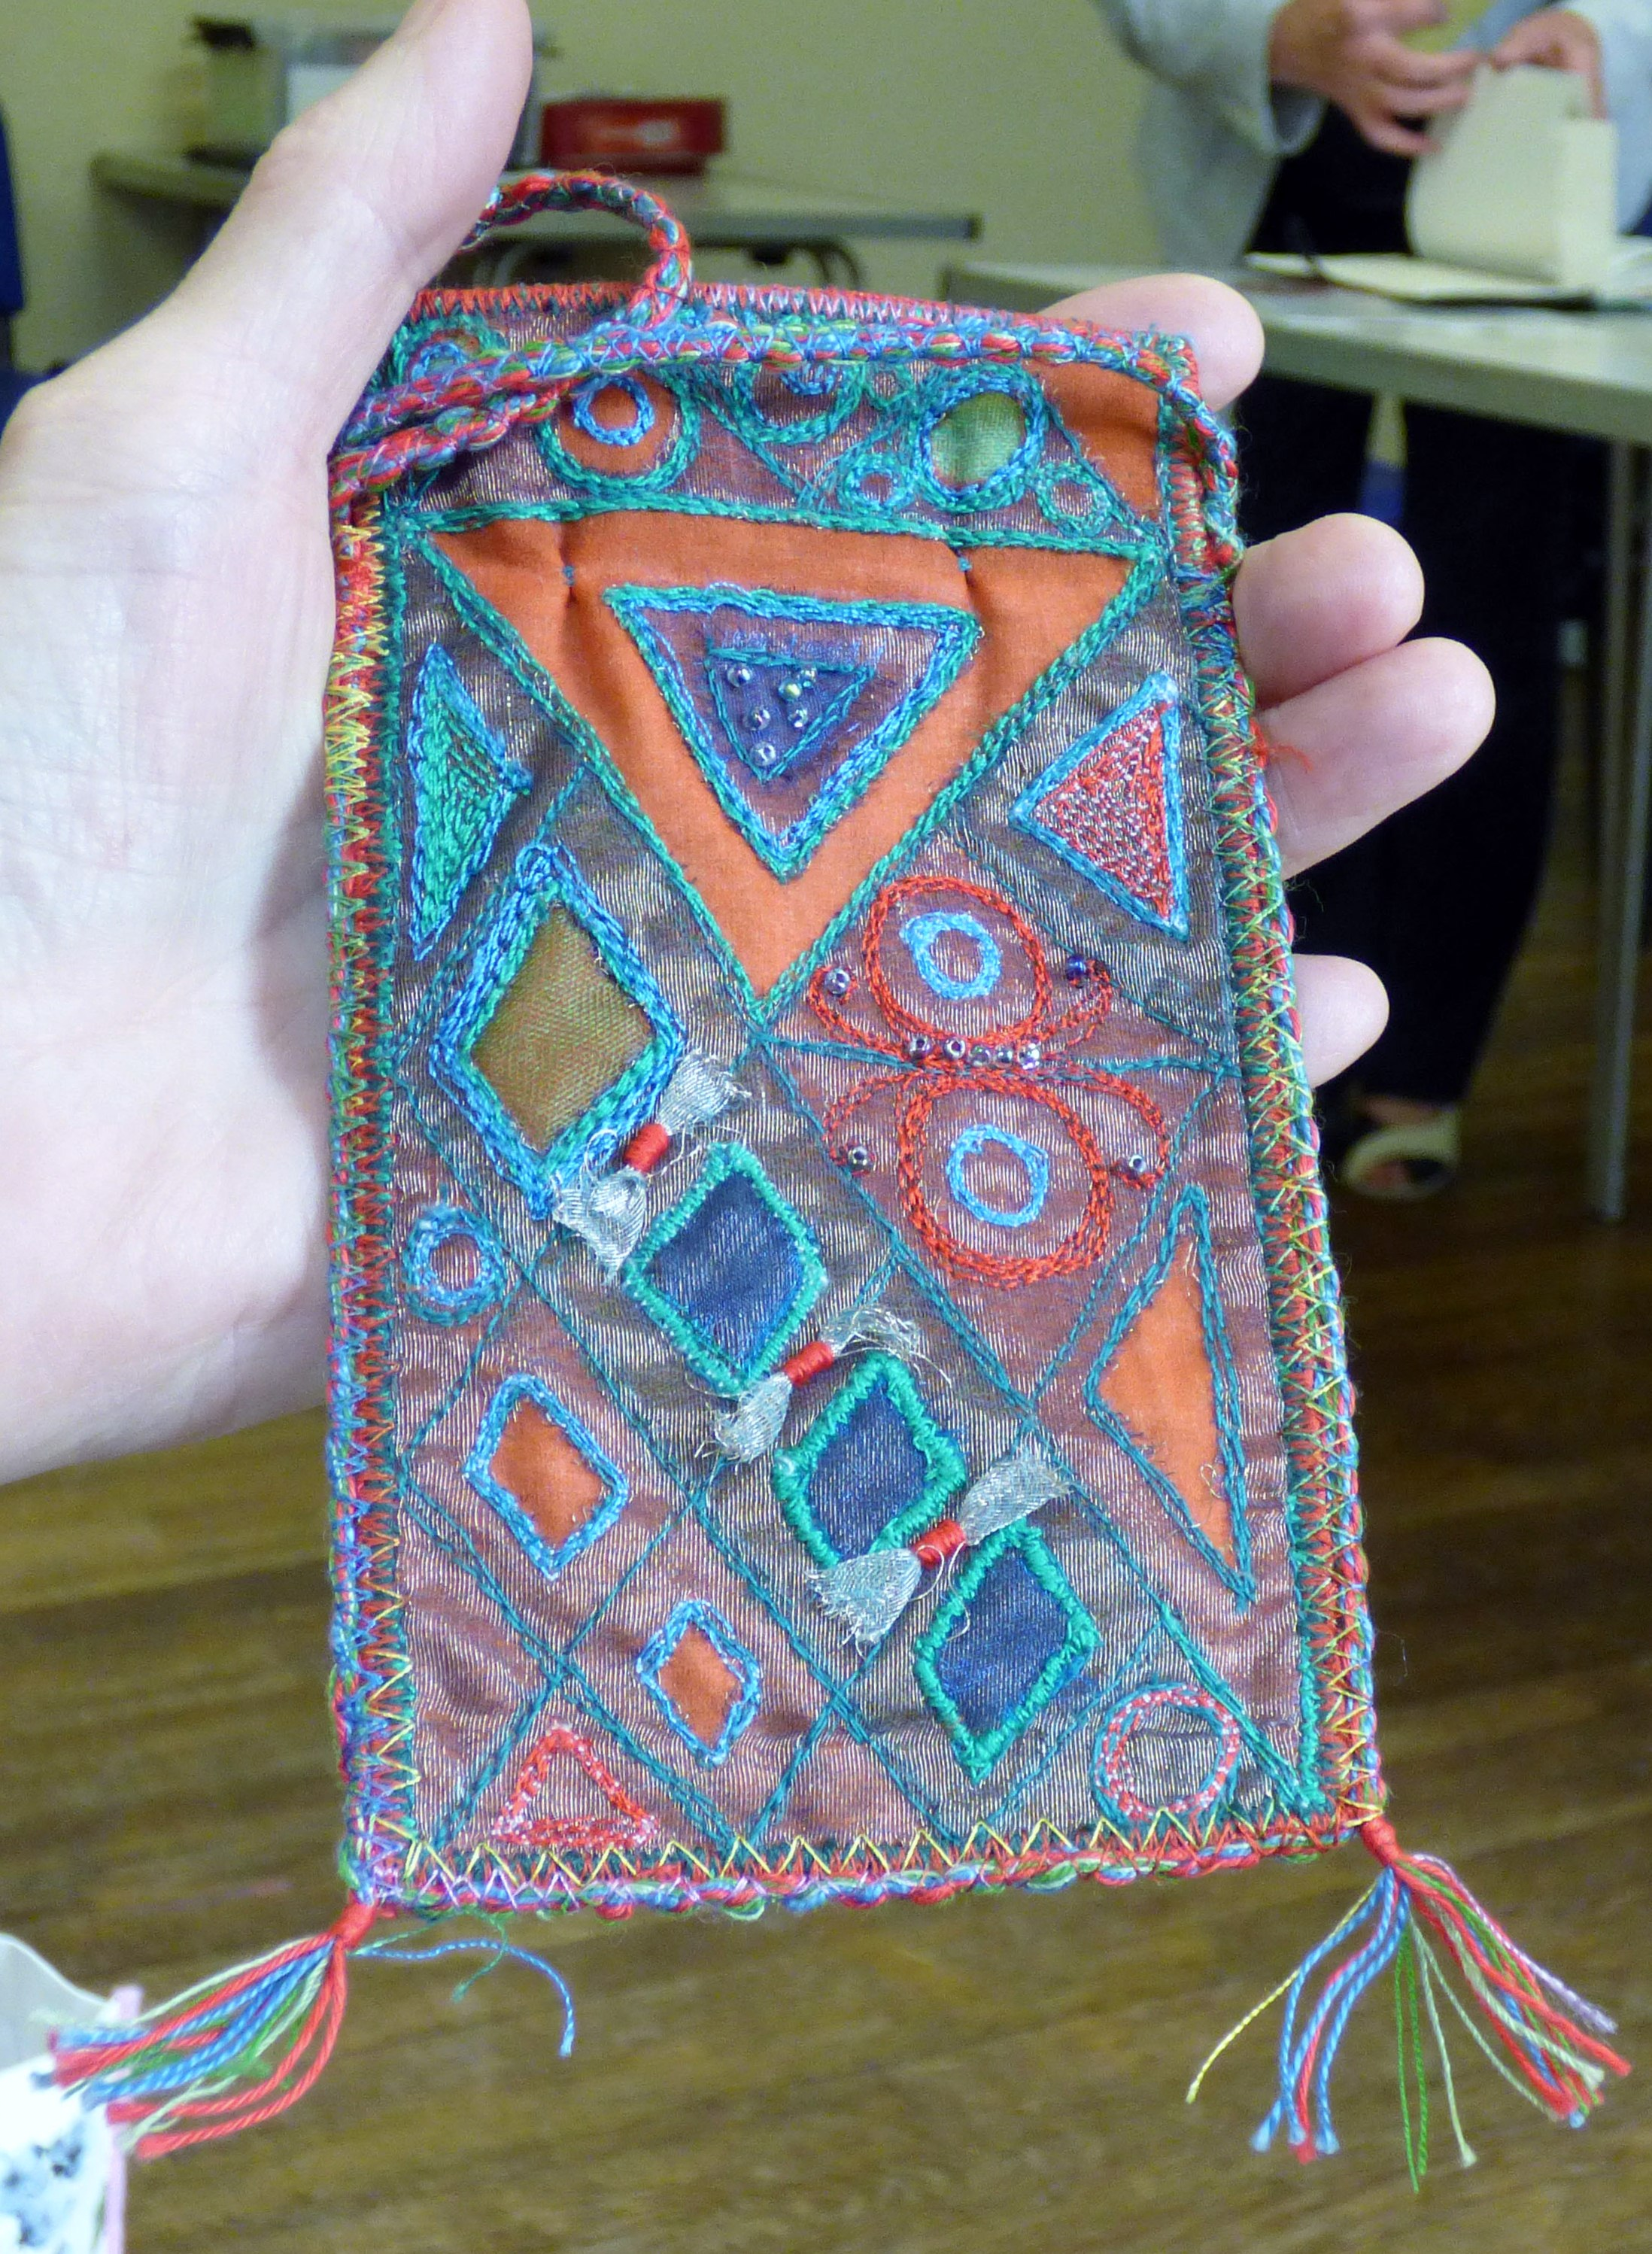 machine embroidered purse by Sheila Conchie, Glossop EG